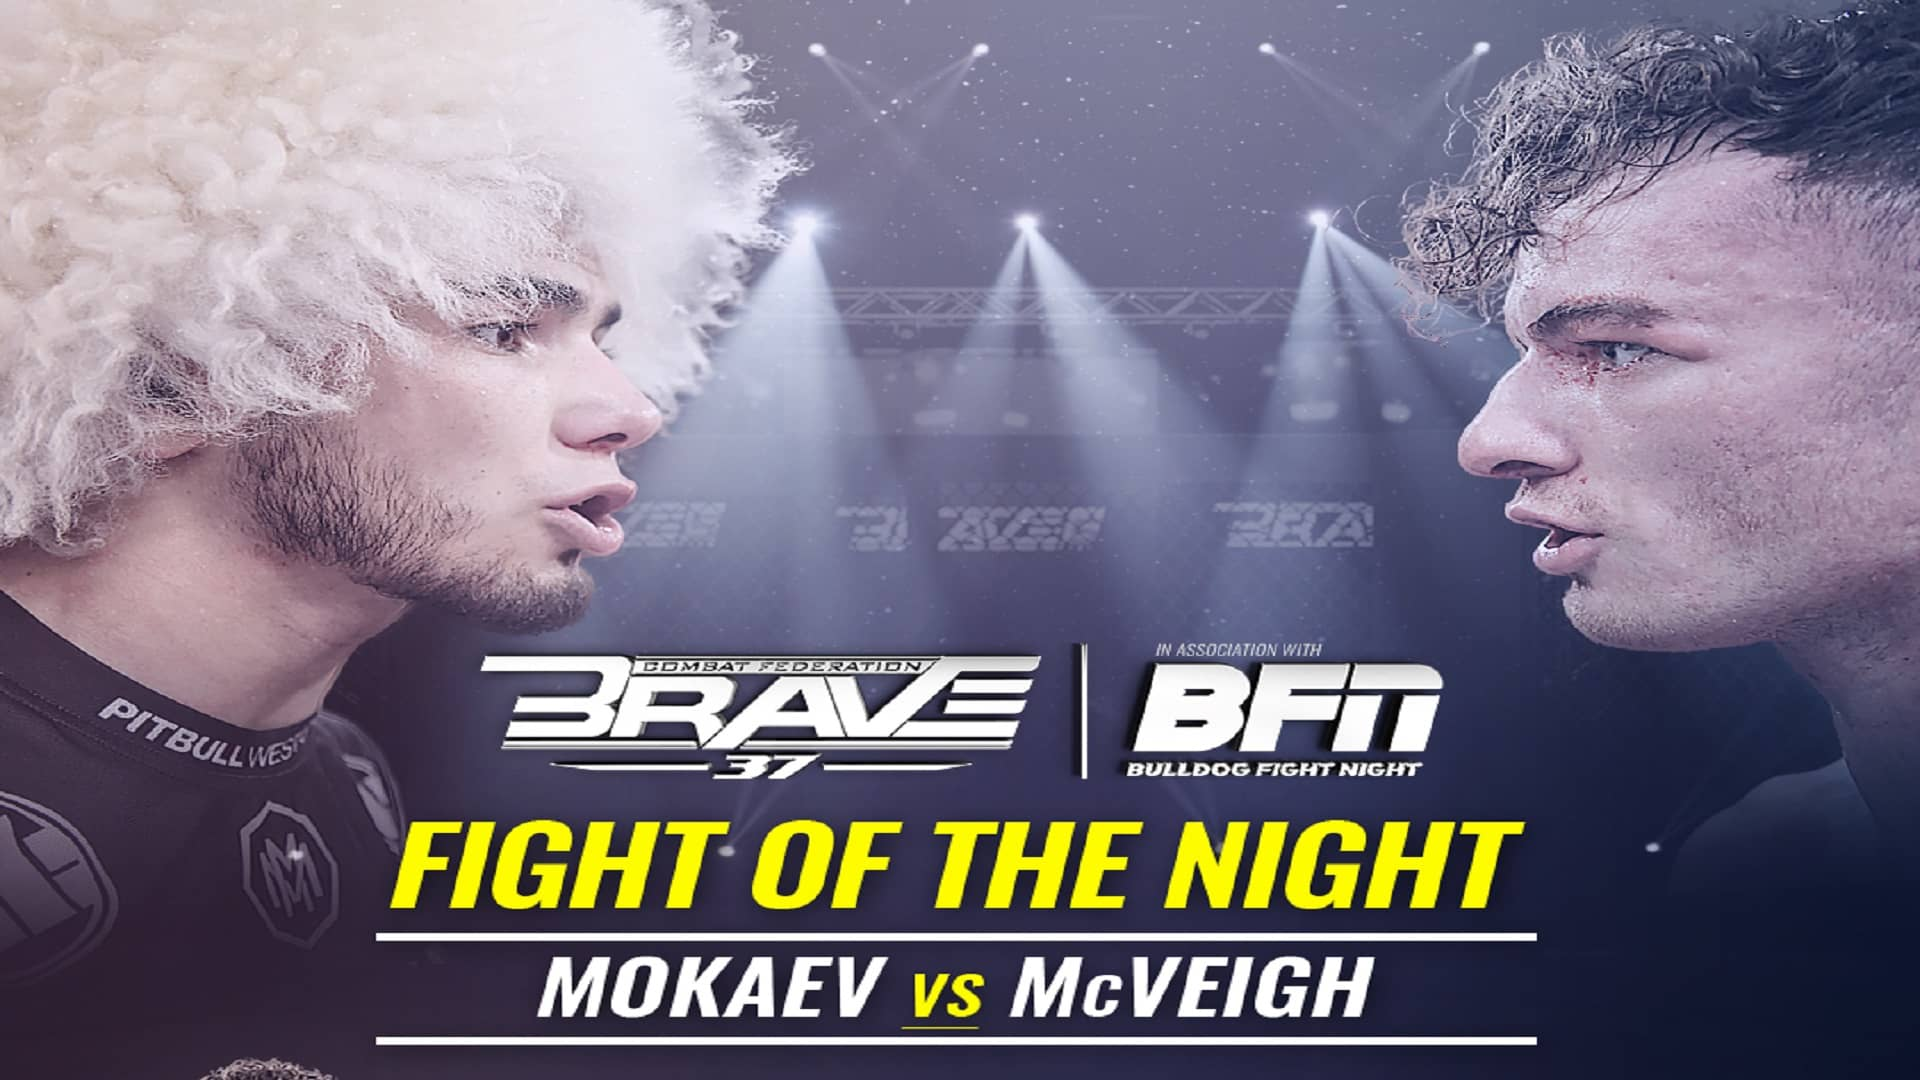 BRAVE-CF-37-Mokaev-McVeight-Fight-Of-the-Night